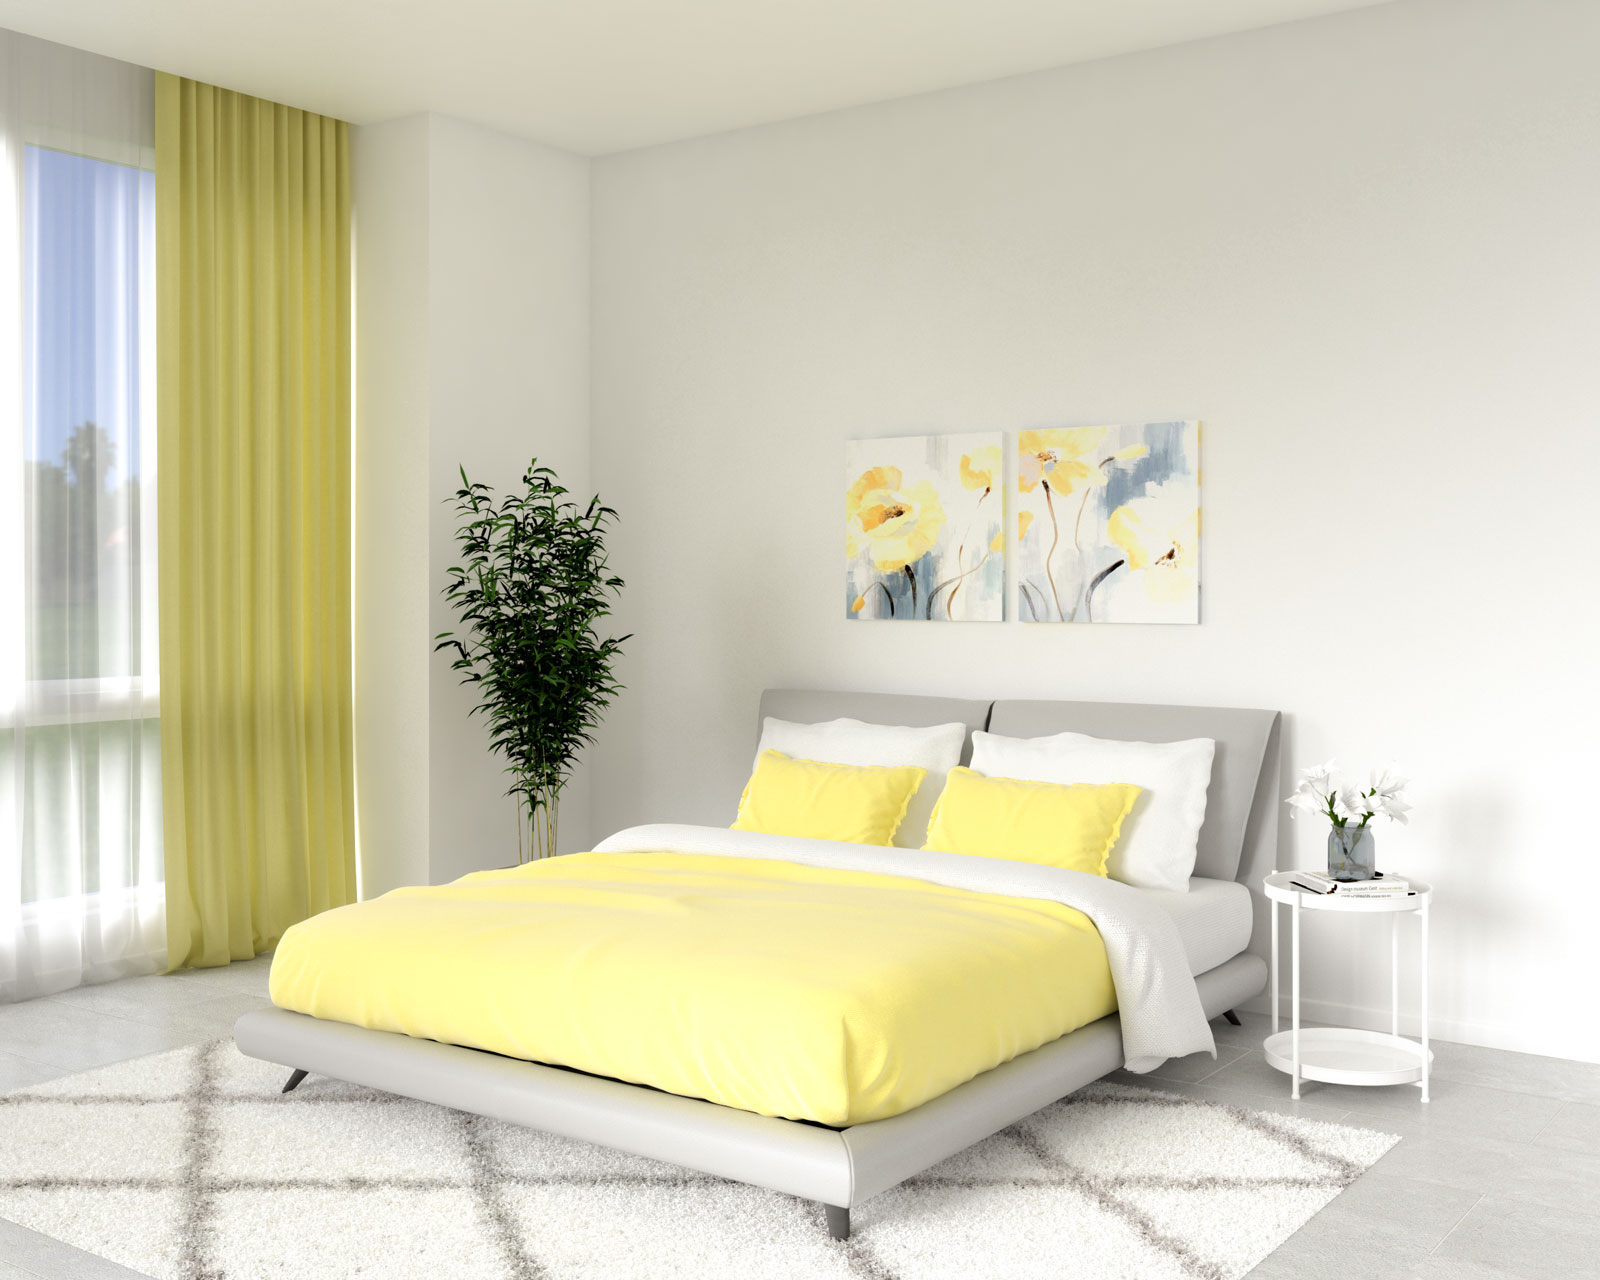 Bedroom with white wall and yellow bedding